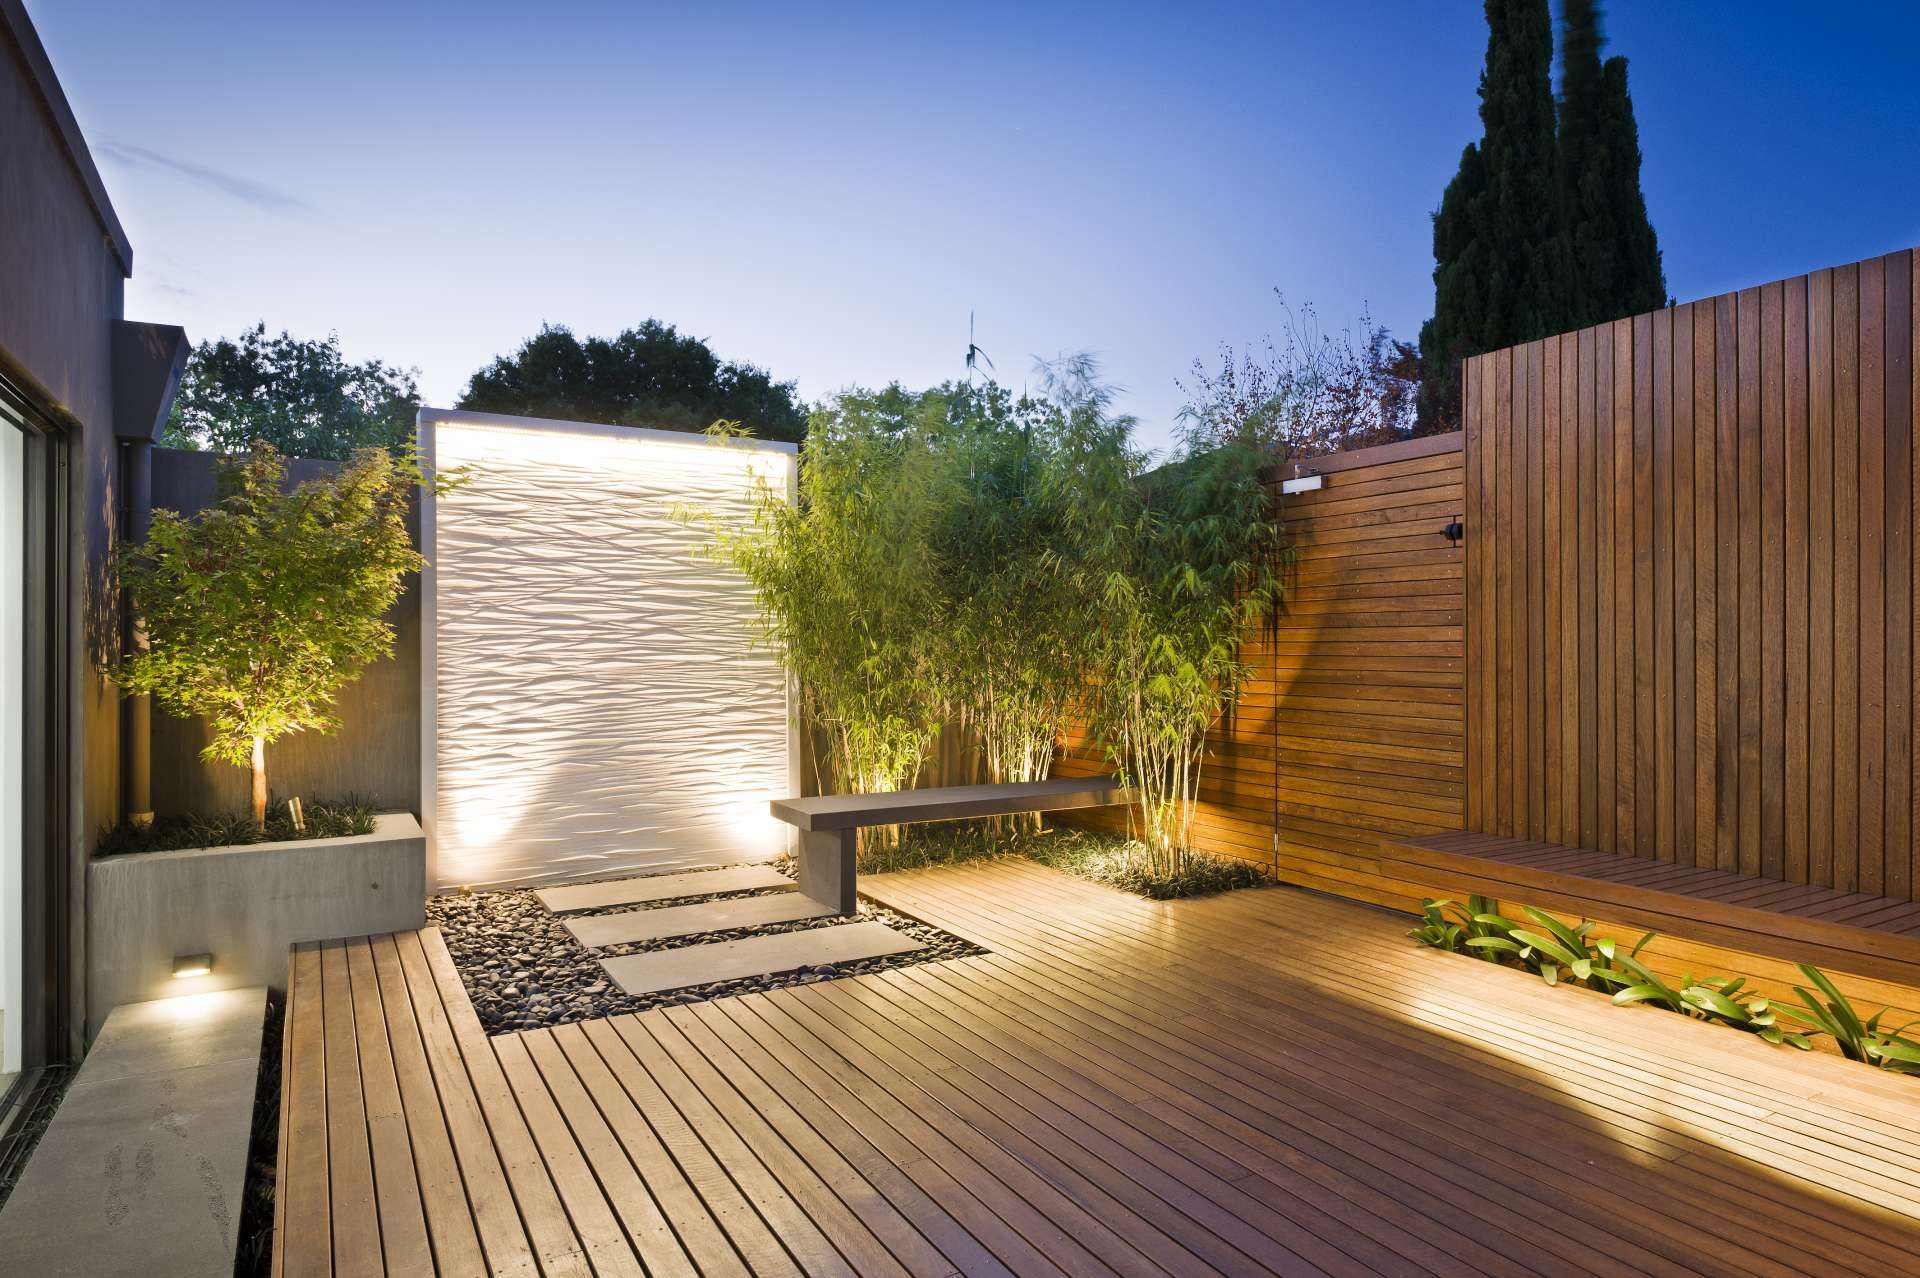 Cos design award winning landscape designs for Landscape design melbourne